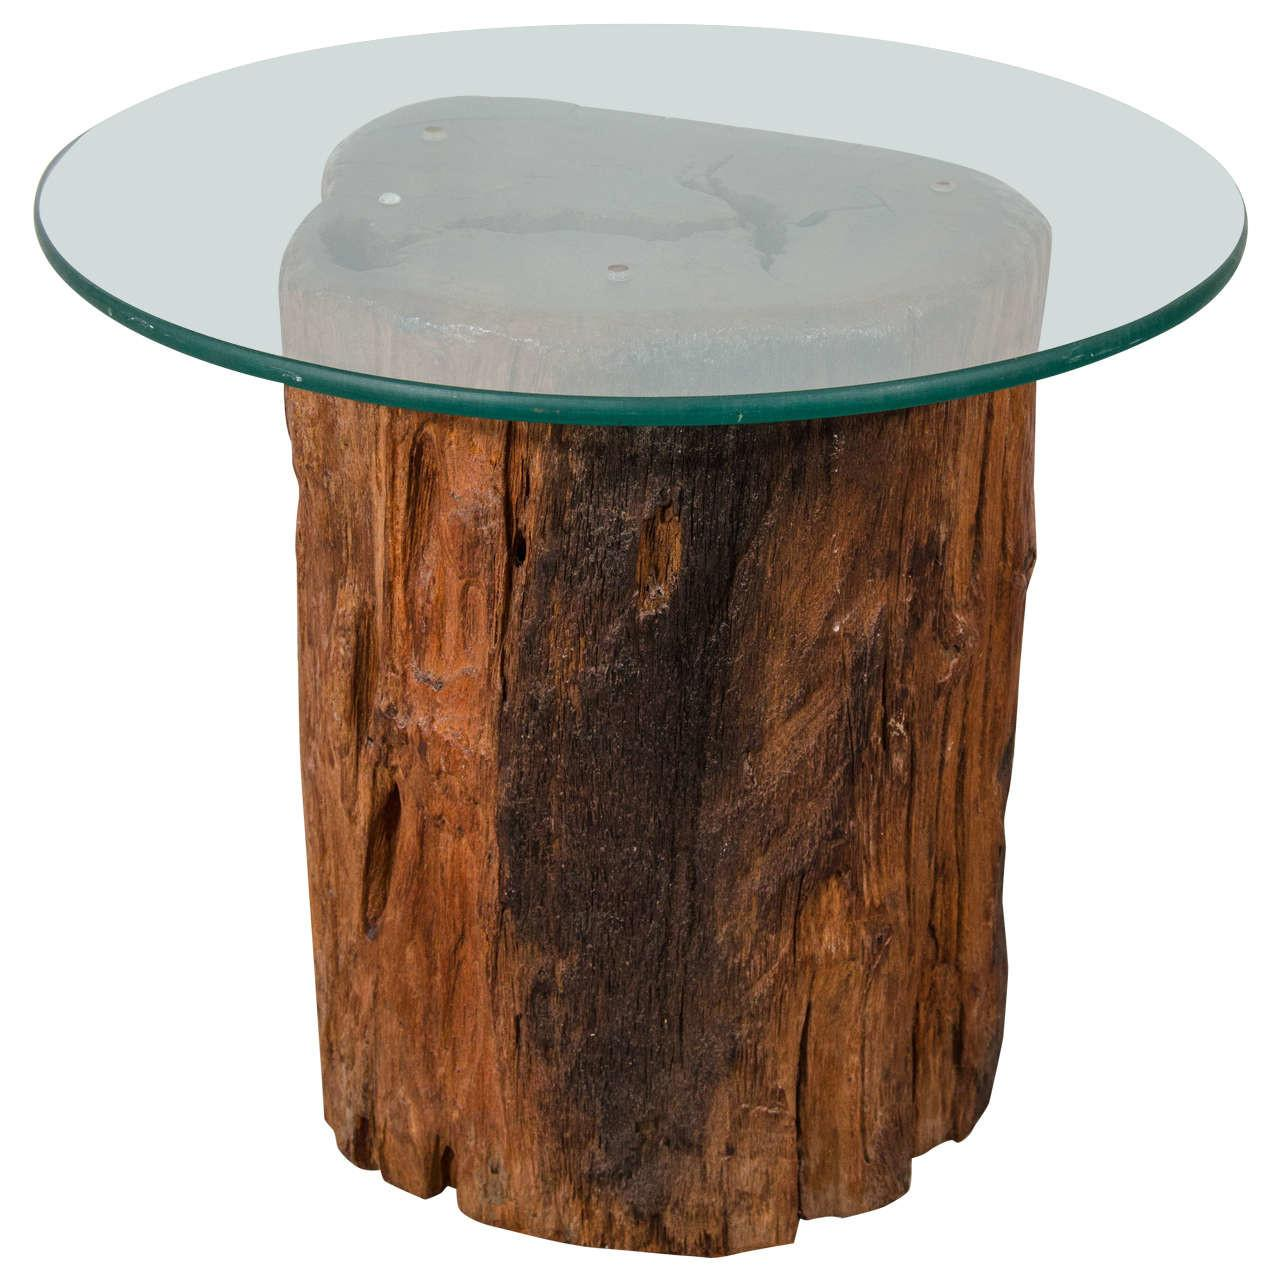 Antique Petrified Tree Trunk Side Table Glass Top